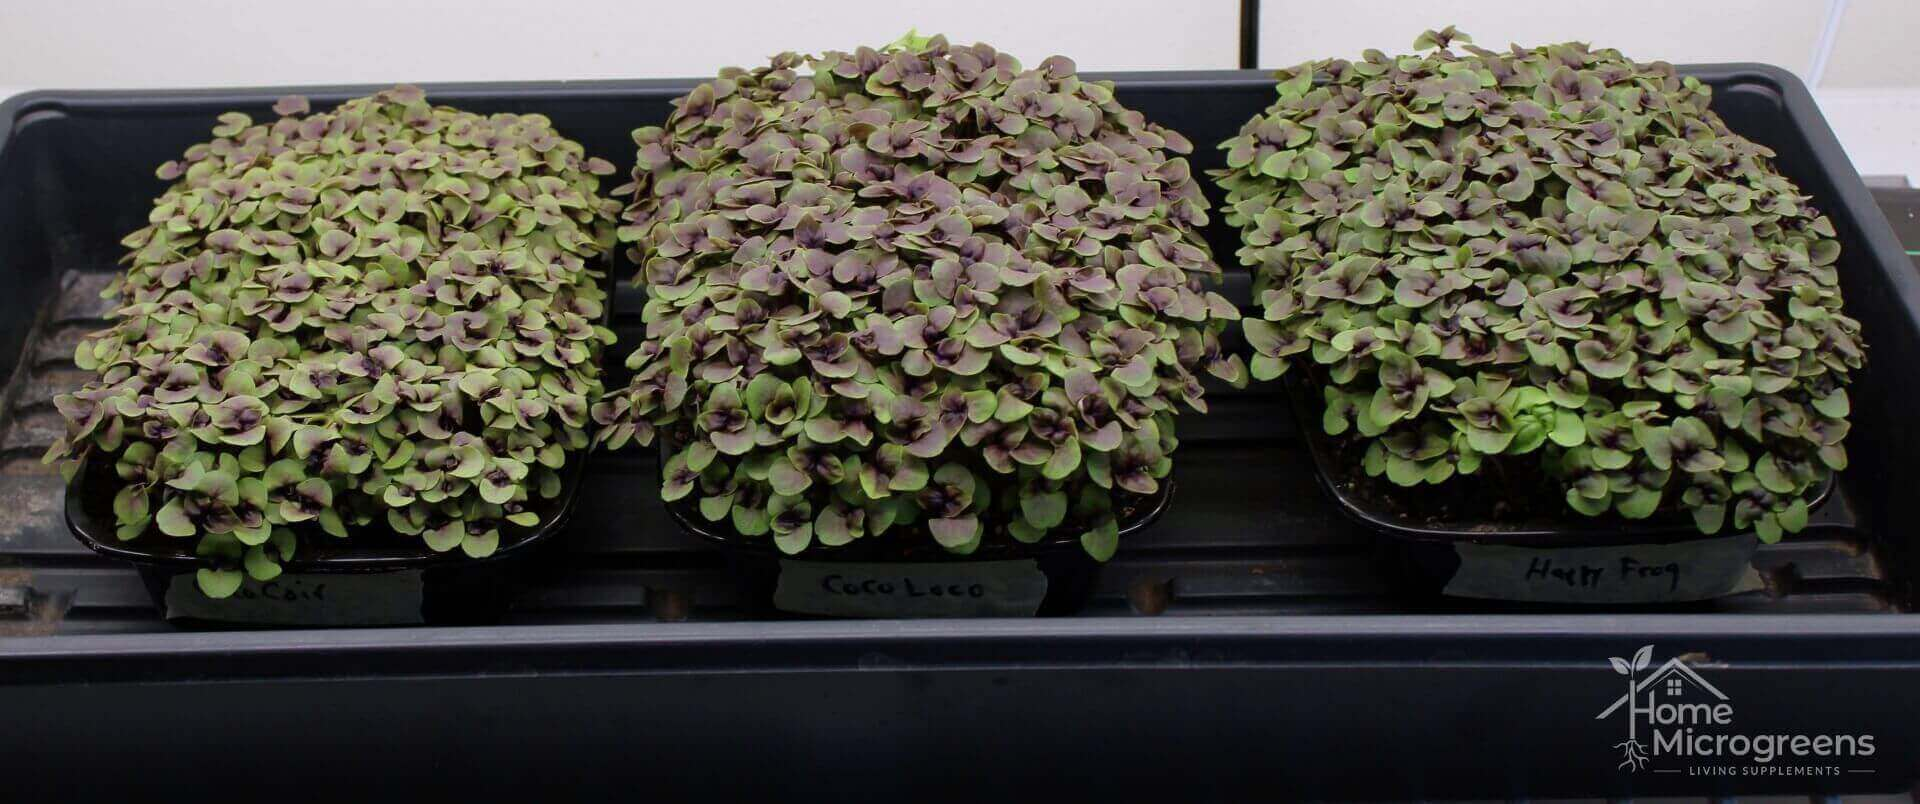 best microgreen soil for Dark Opal Basil microgreens